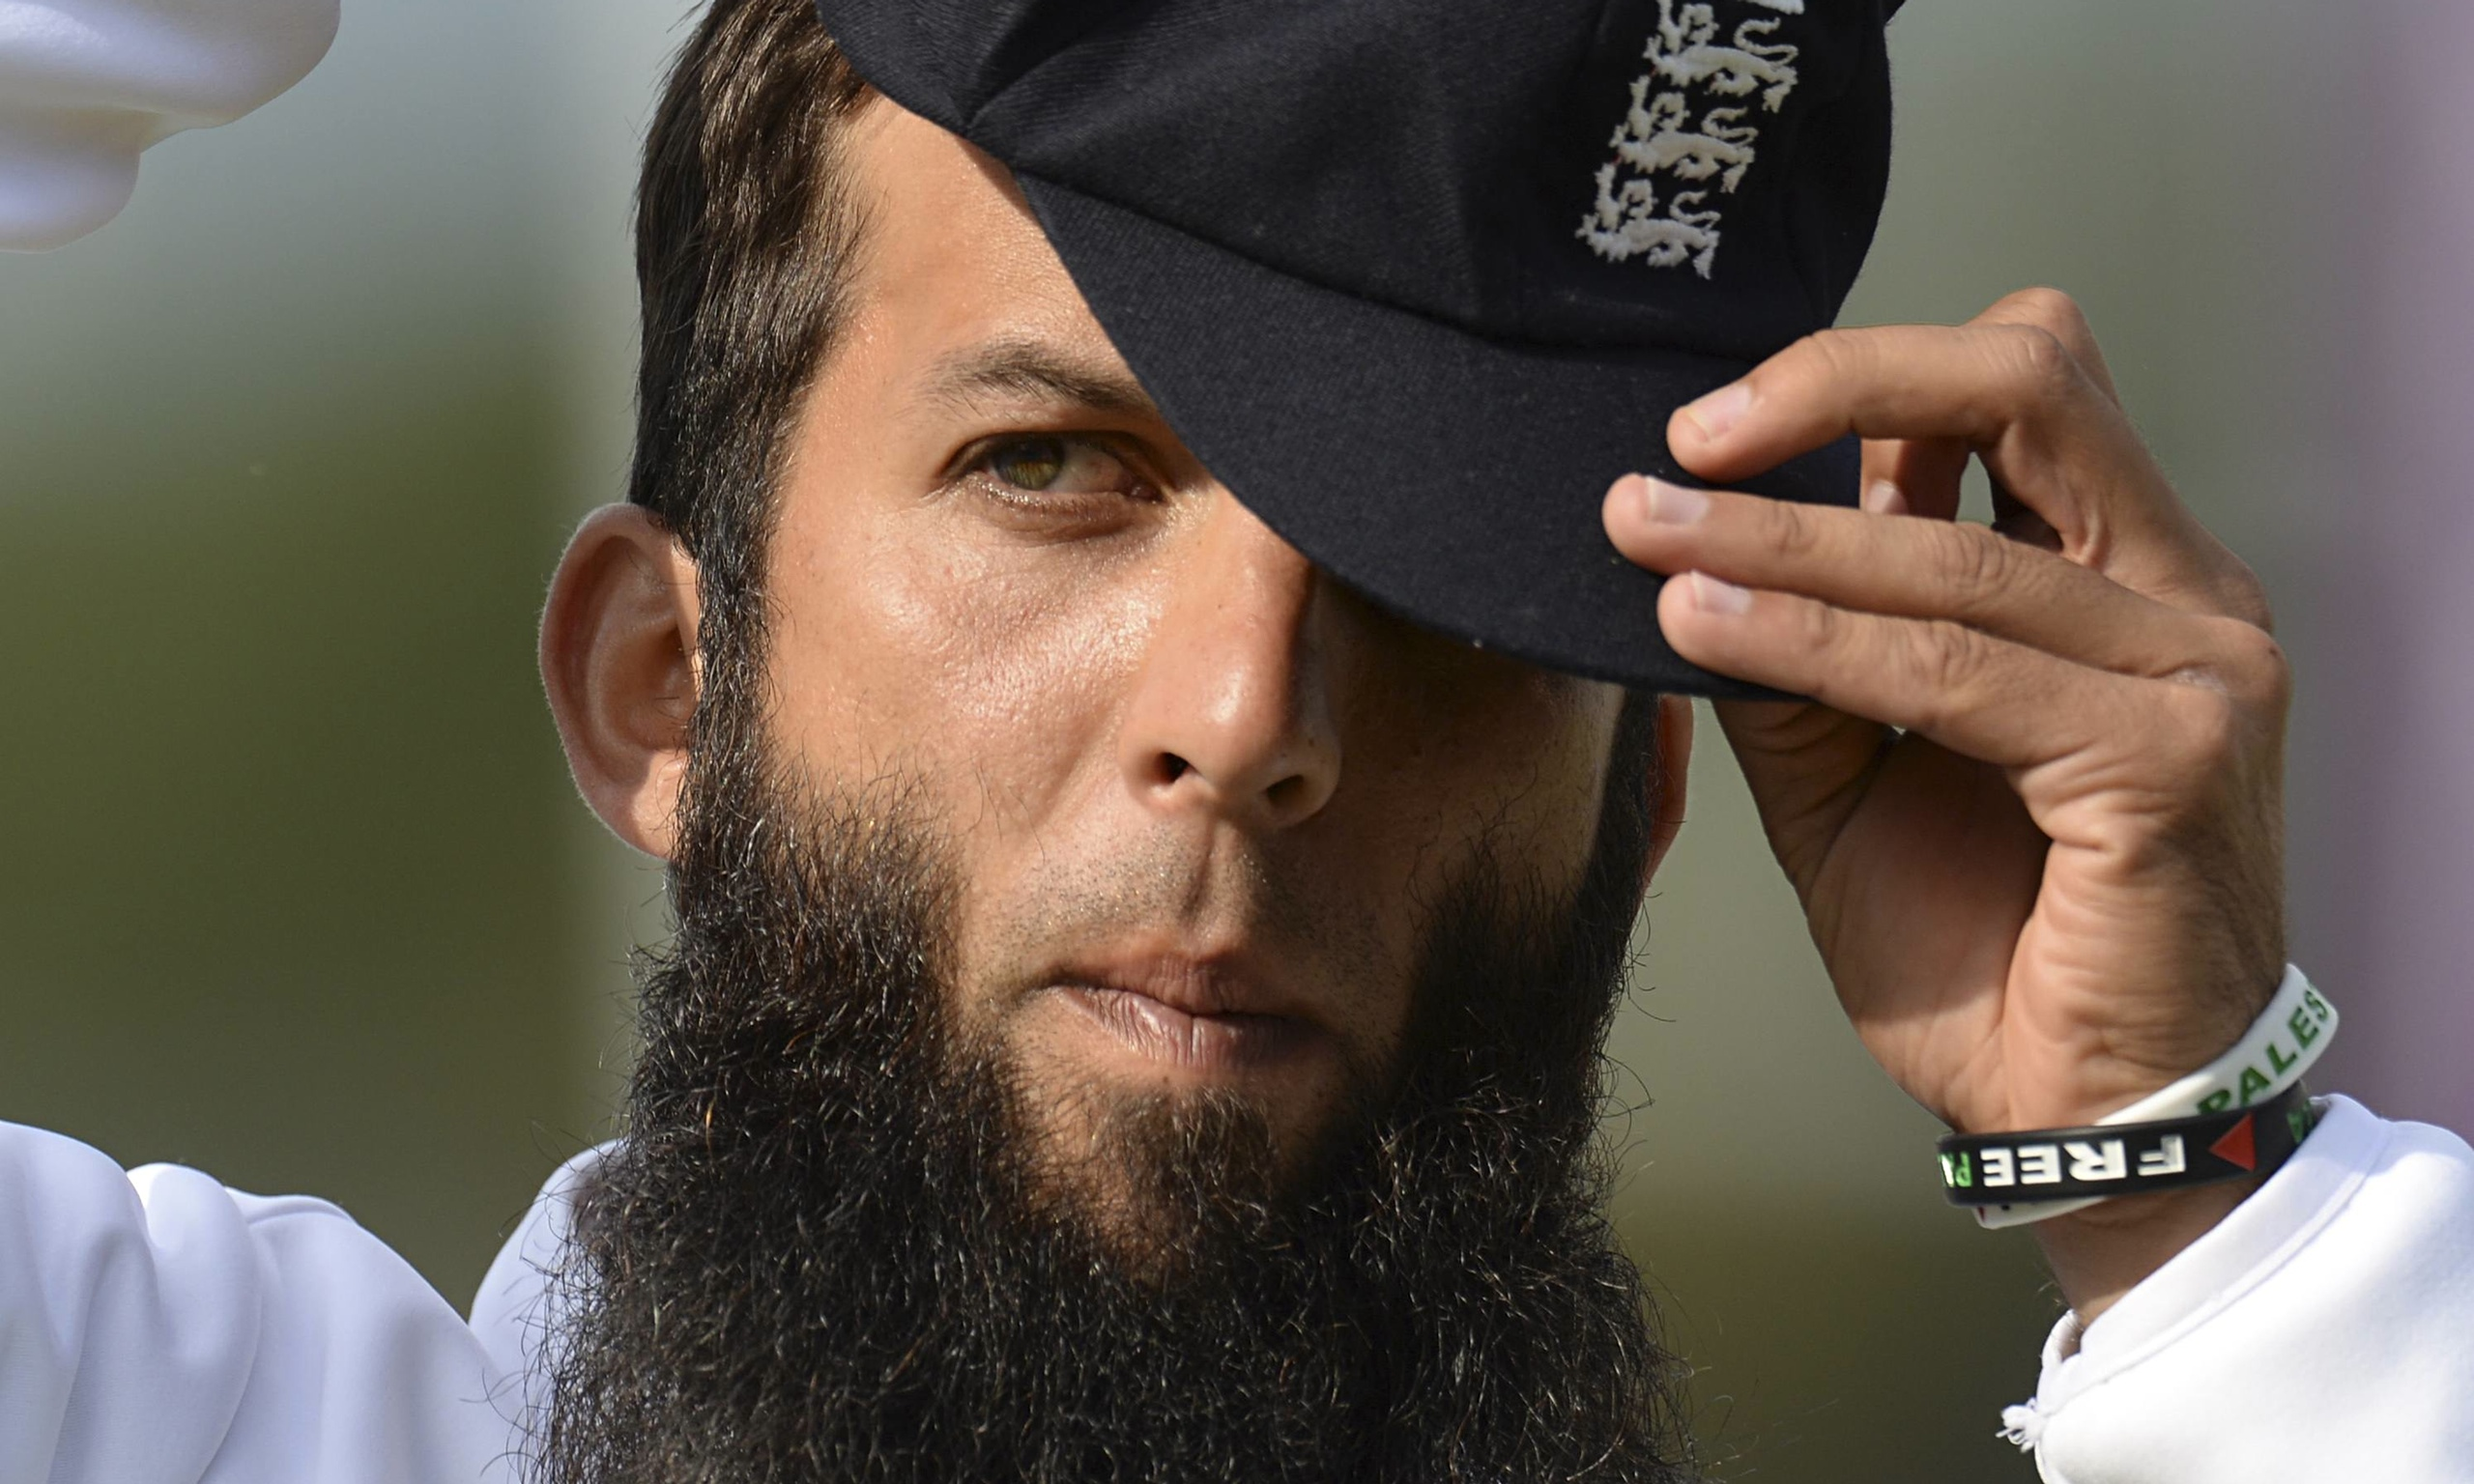 Moeen Ali (Cricketer) playing cricket